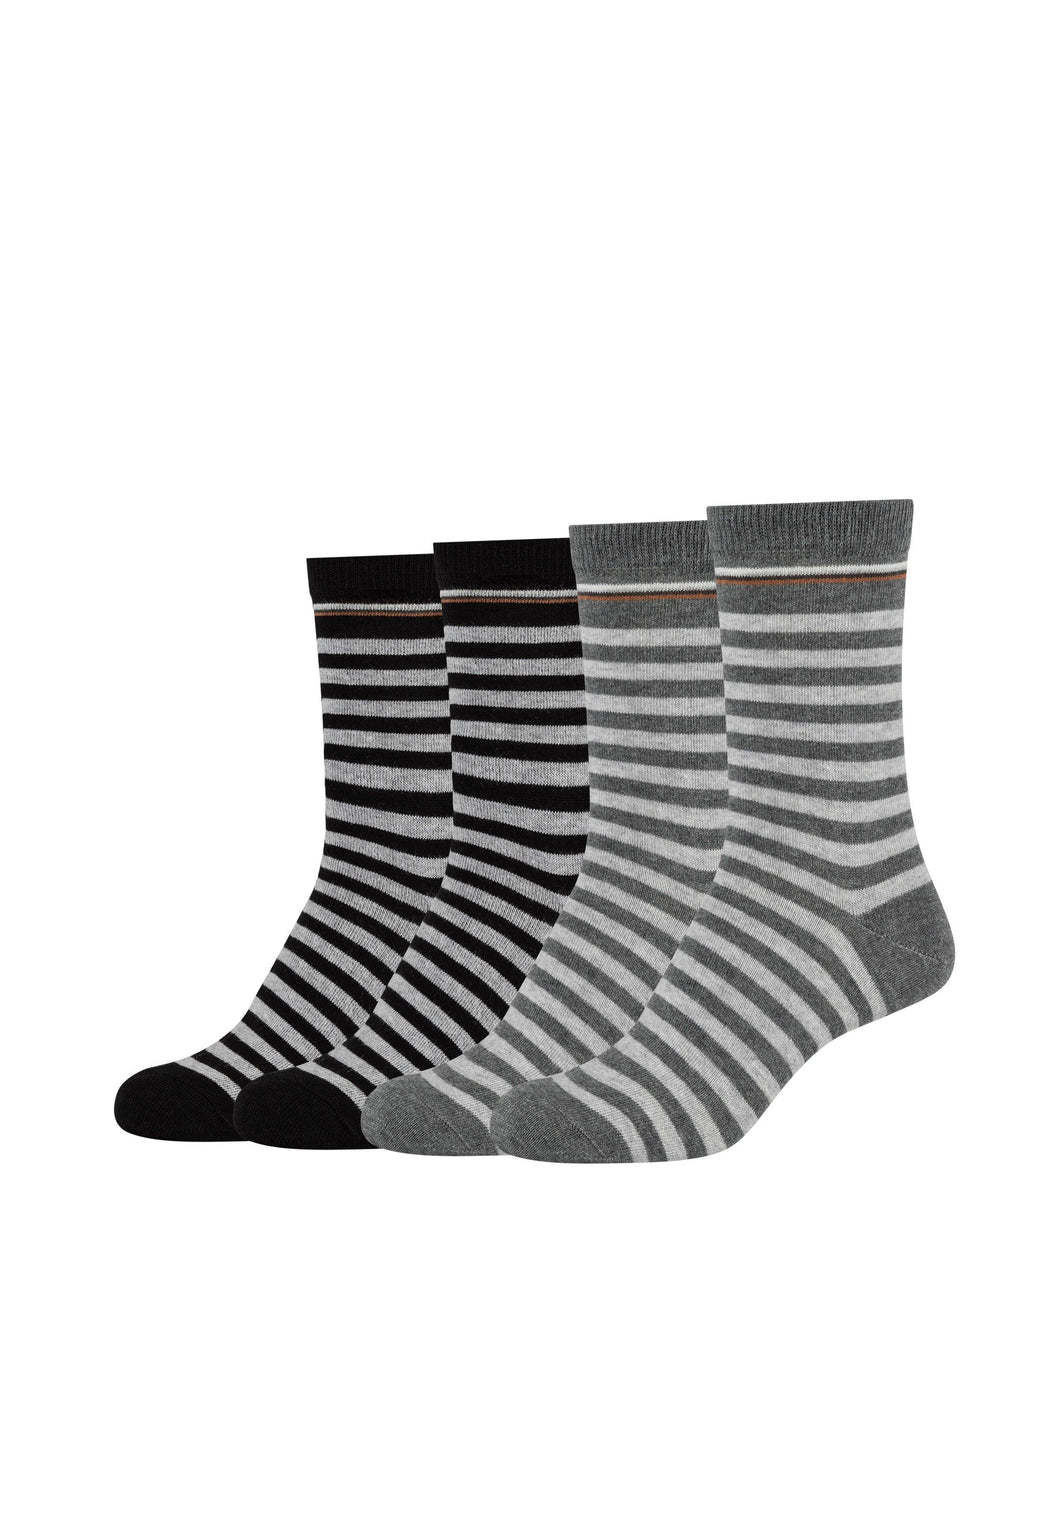 Socken Basic für Damen 4er Pack